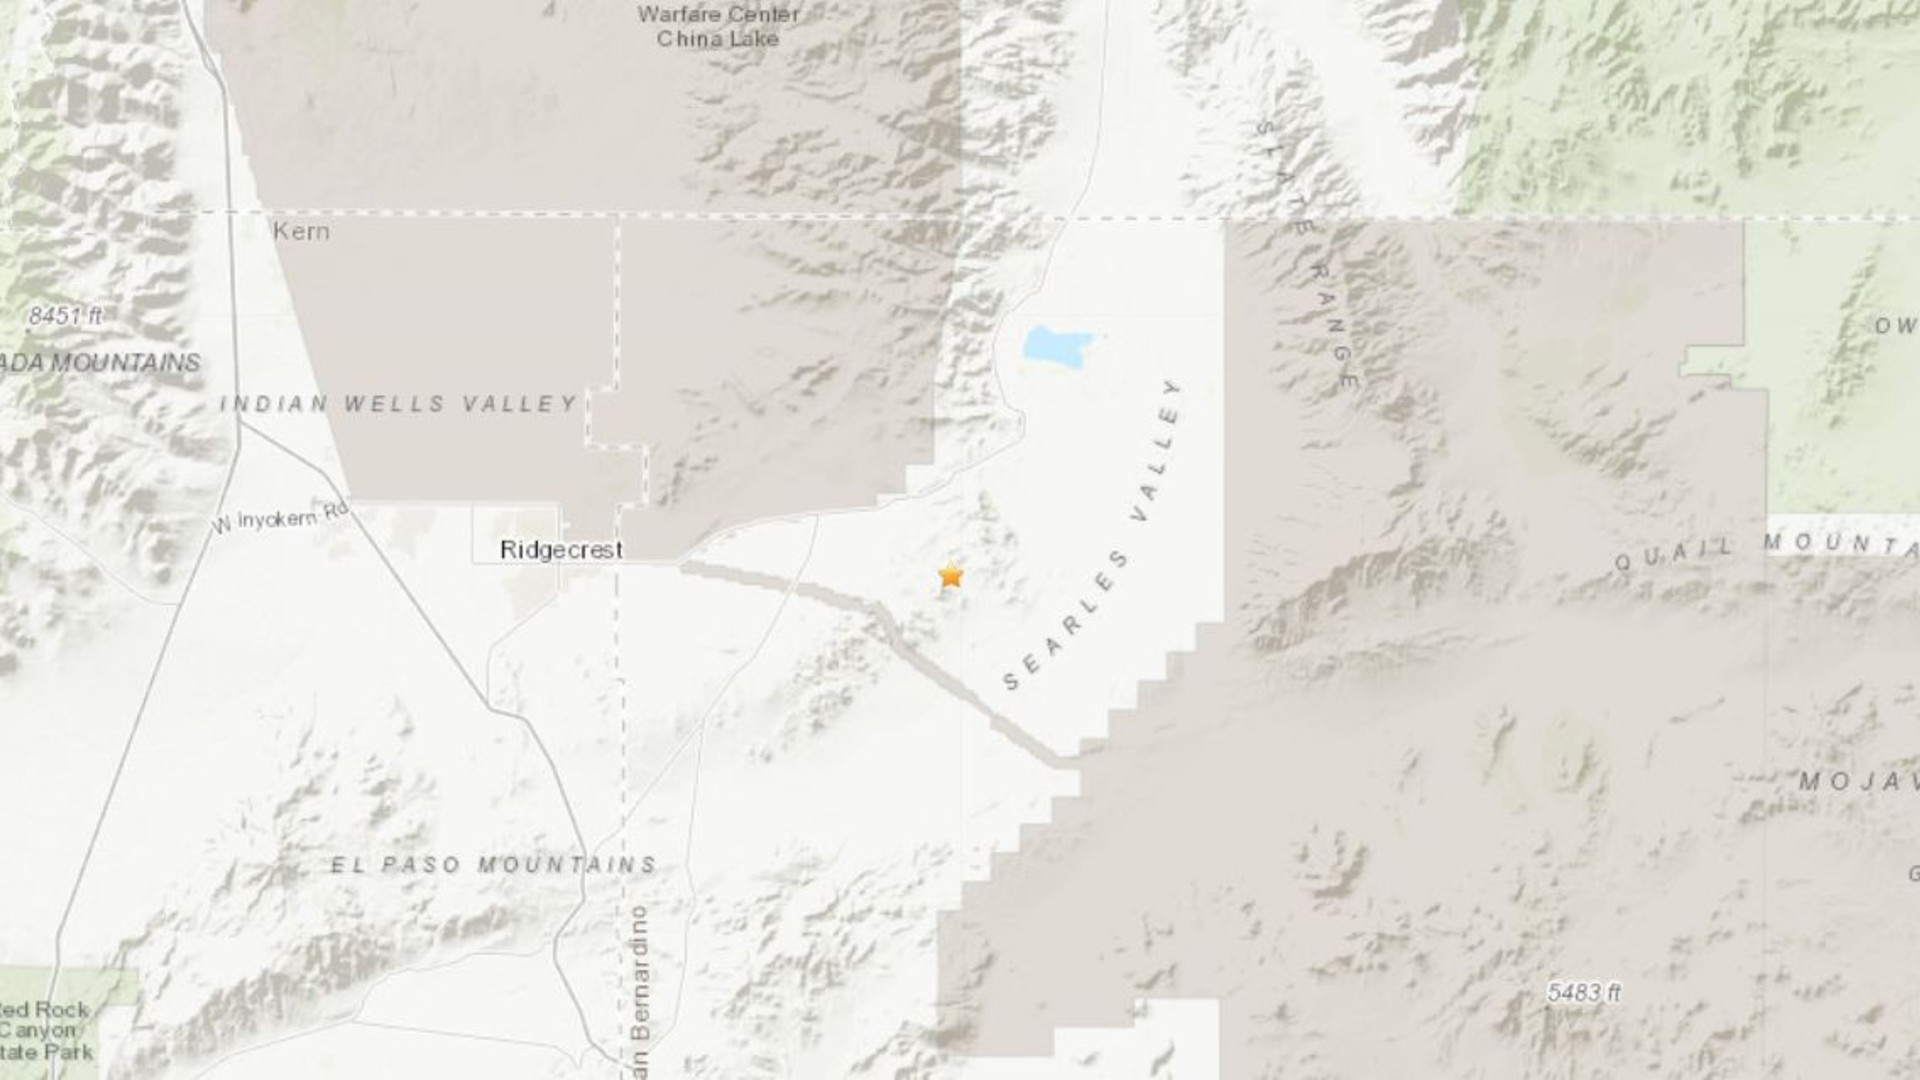 A 5.5-magnitude earthquake struck near Ridgecrest on June 3, 2020. (Credit: U.S. Geological Survey)